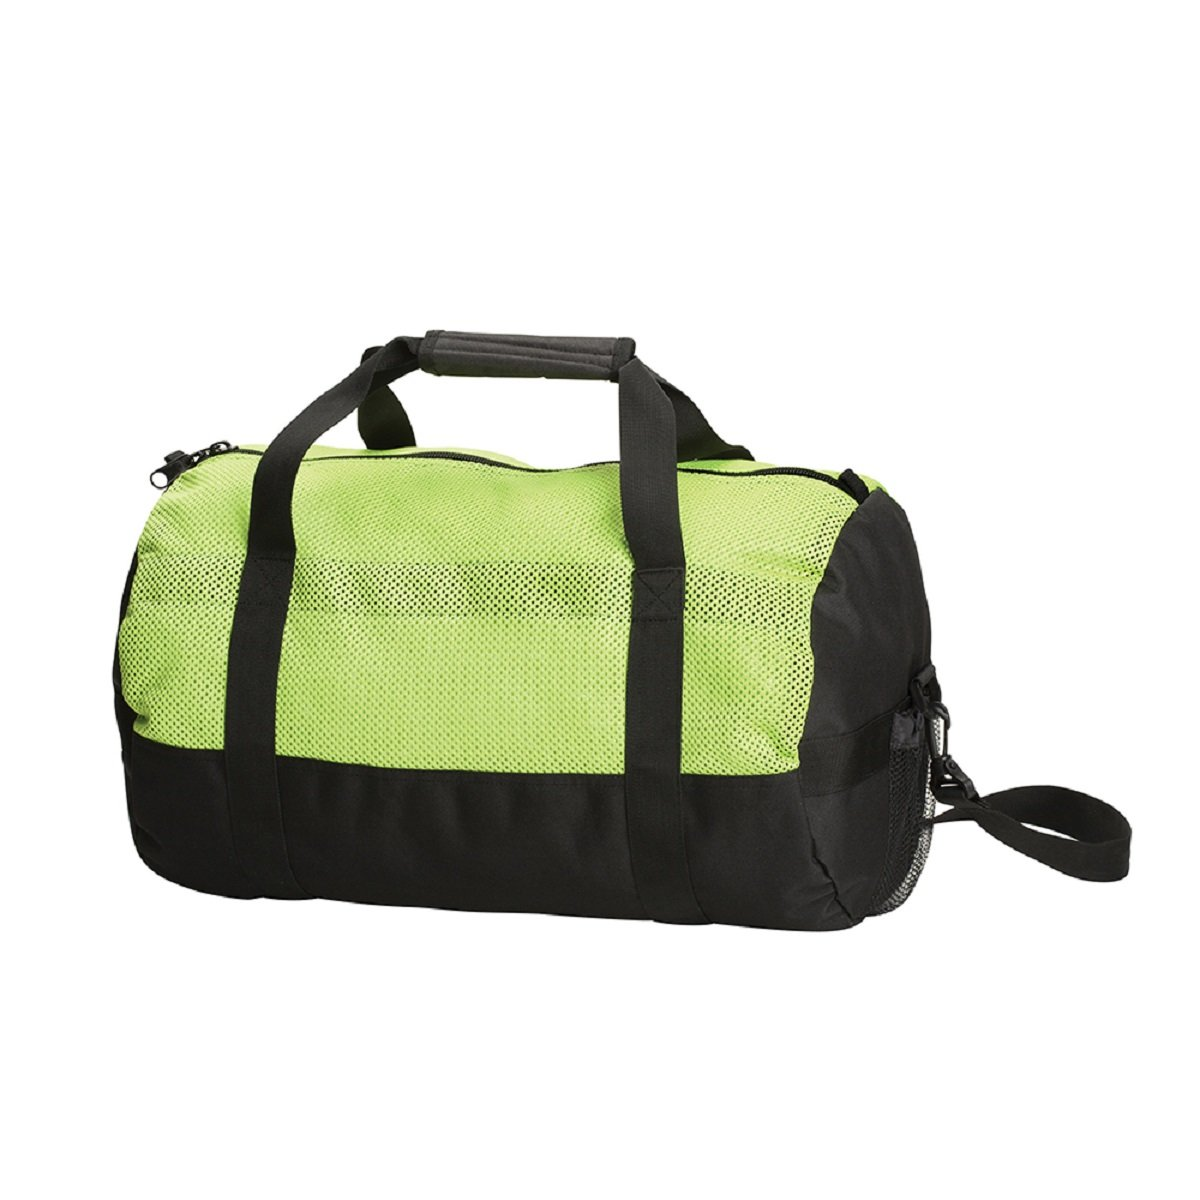 STANSPORT MESH TOP ROLL BAG - 12 IN X 20 IN - GREEN/BLACK, Case of 12